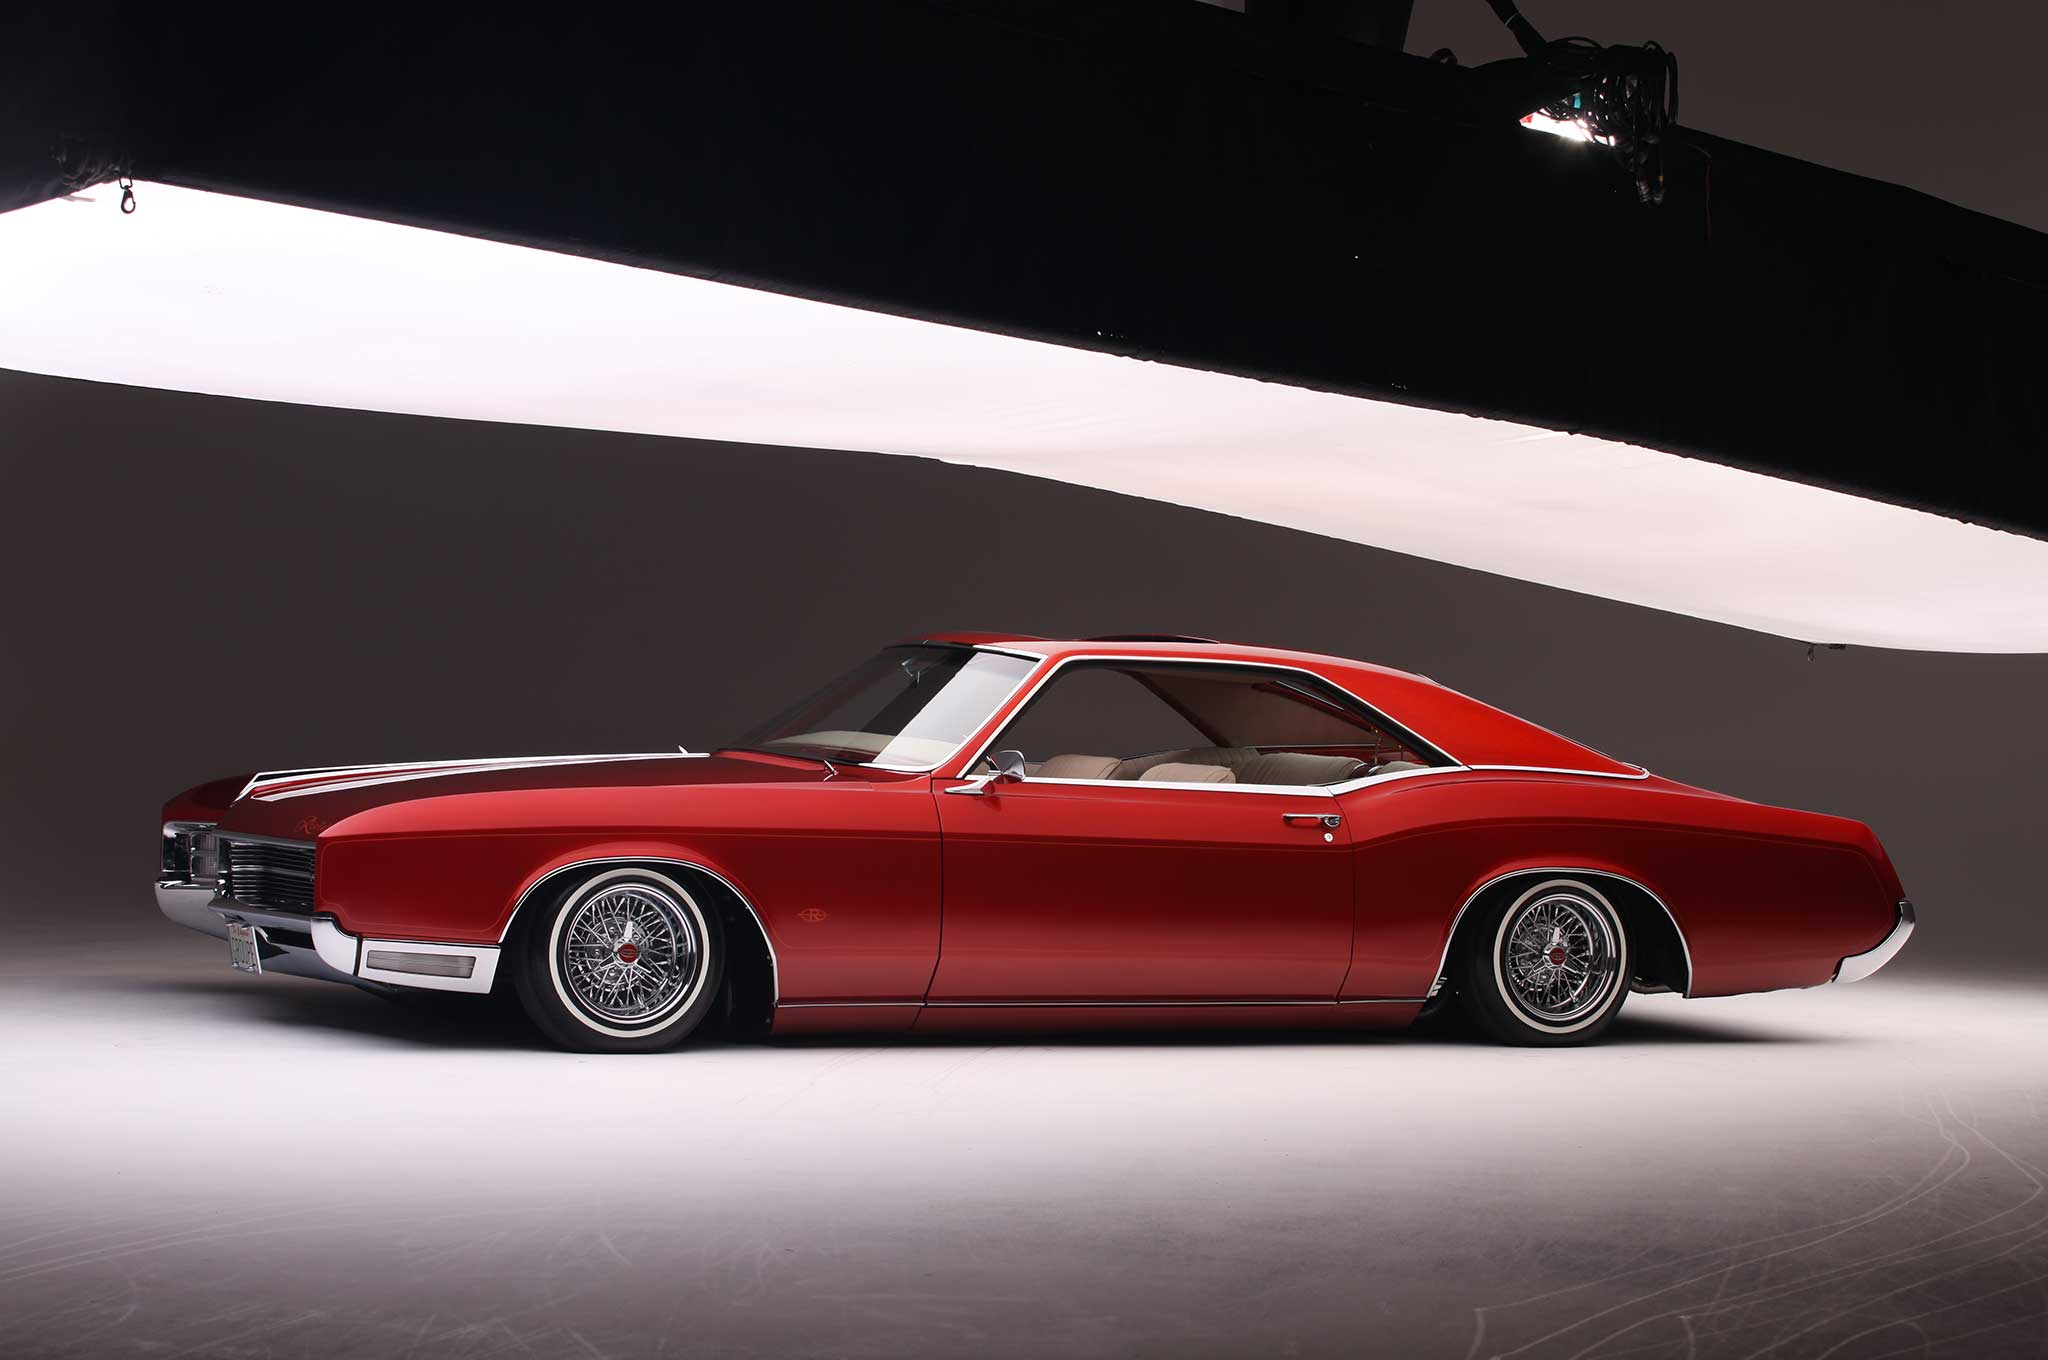 1967 Buick Riviera - One for the Road - Lowrider